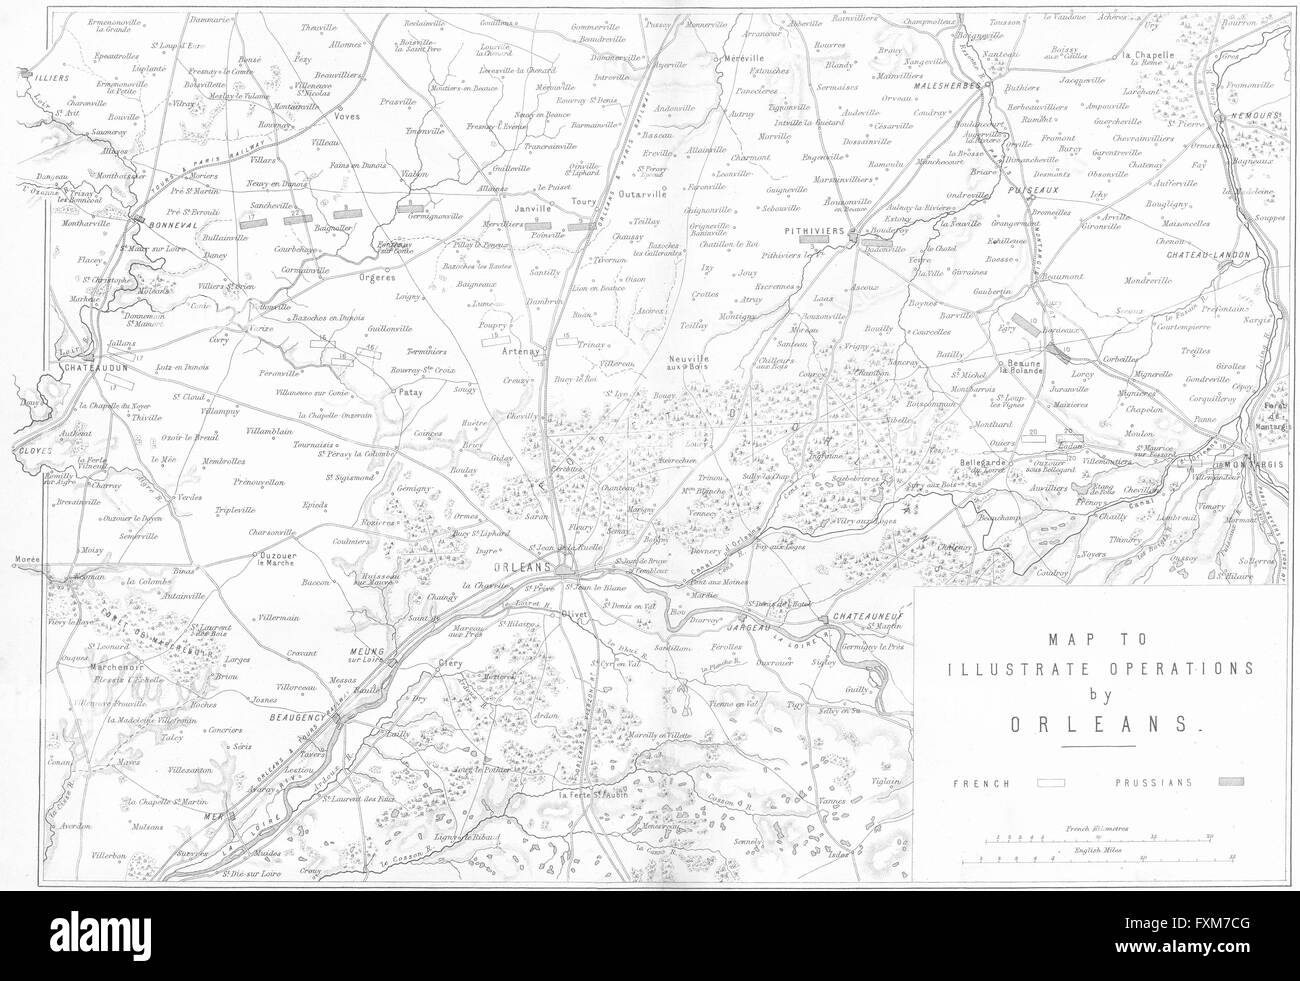 ORLEANS: operations map: Franco-Prussian war, 1875 - Stock Image